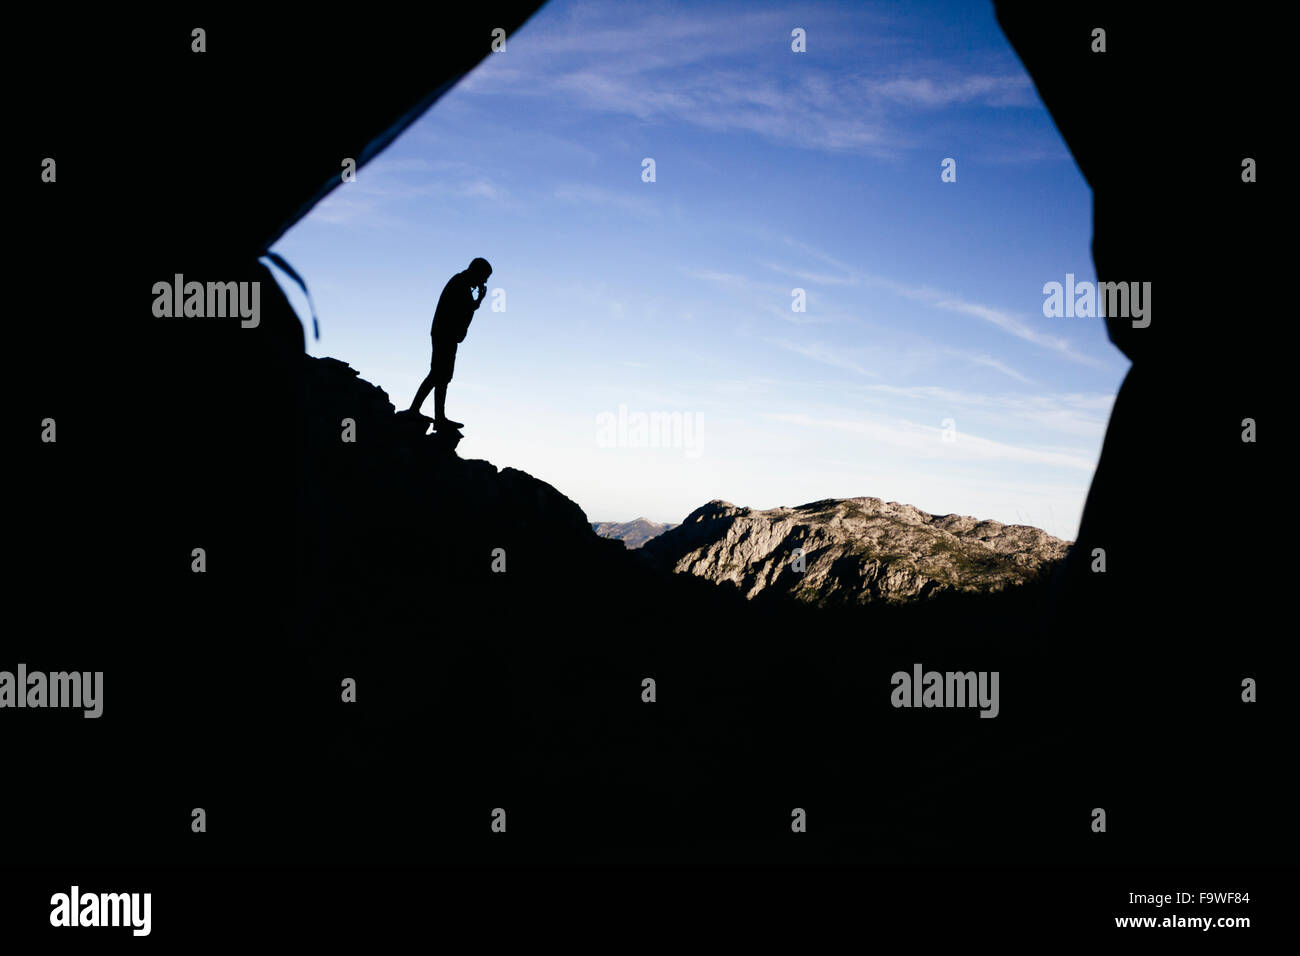 Spain, Picos de Europa, silhouette of a man with mountains landscape - Stock Image